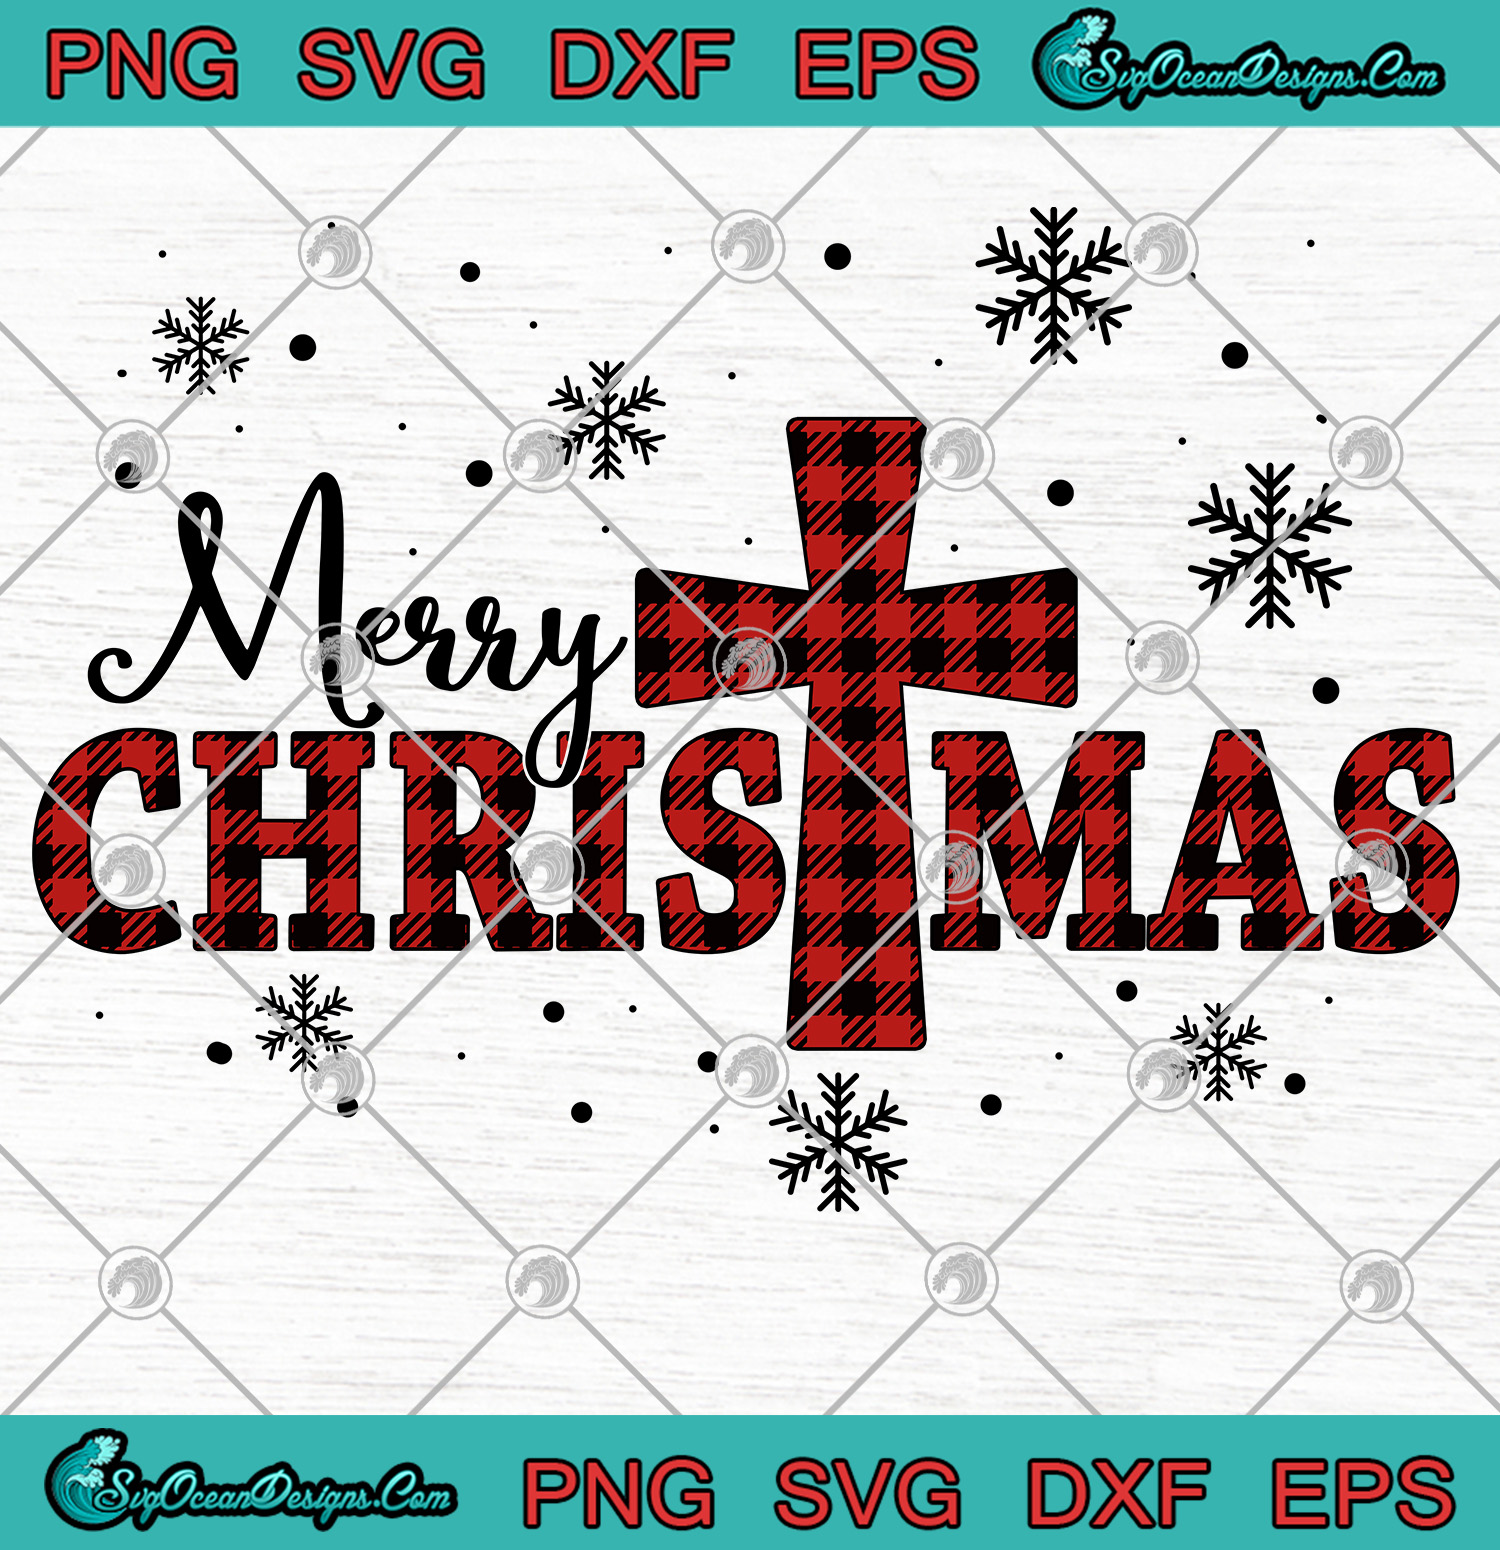 Merry Christmas With Cross Plaid Svg Png Eps Dxf Christmas Cross Svg Png Cricut File Silhouette Svg Designs Digital Download